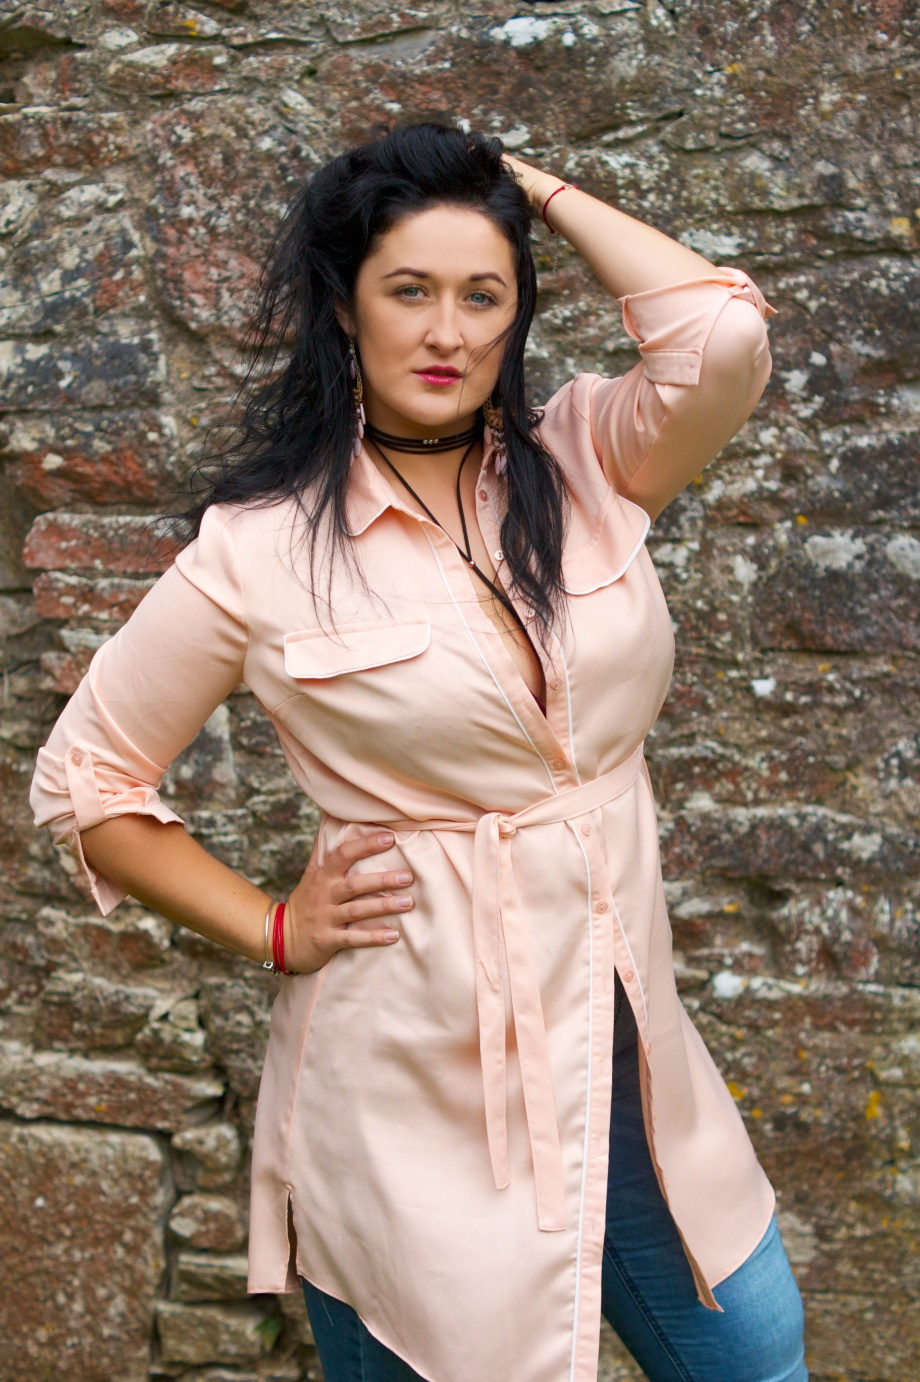 Curvy Model in Cork, Ireland